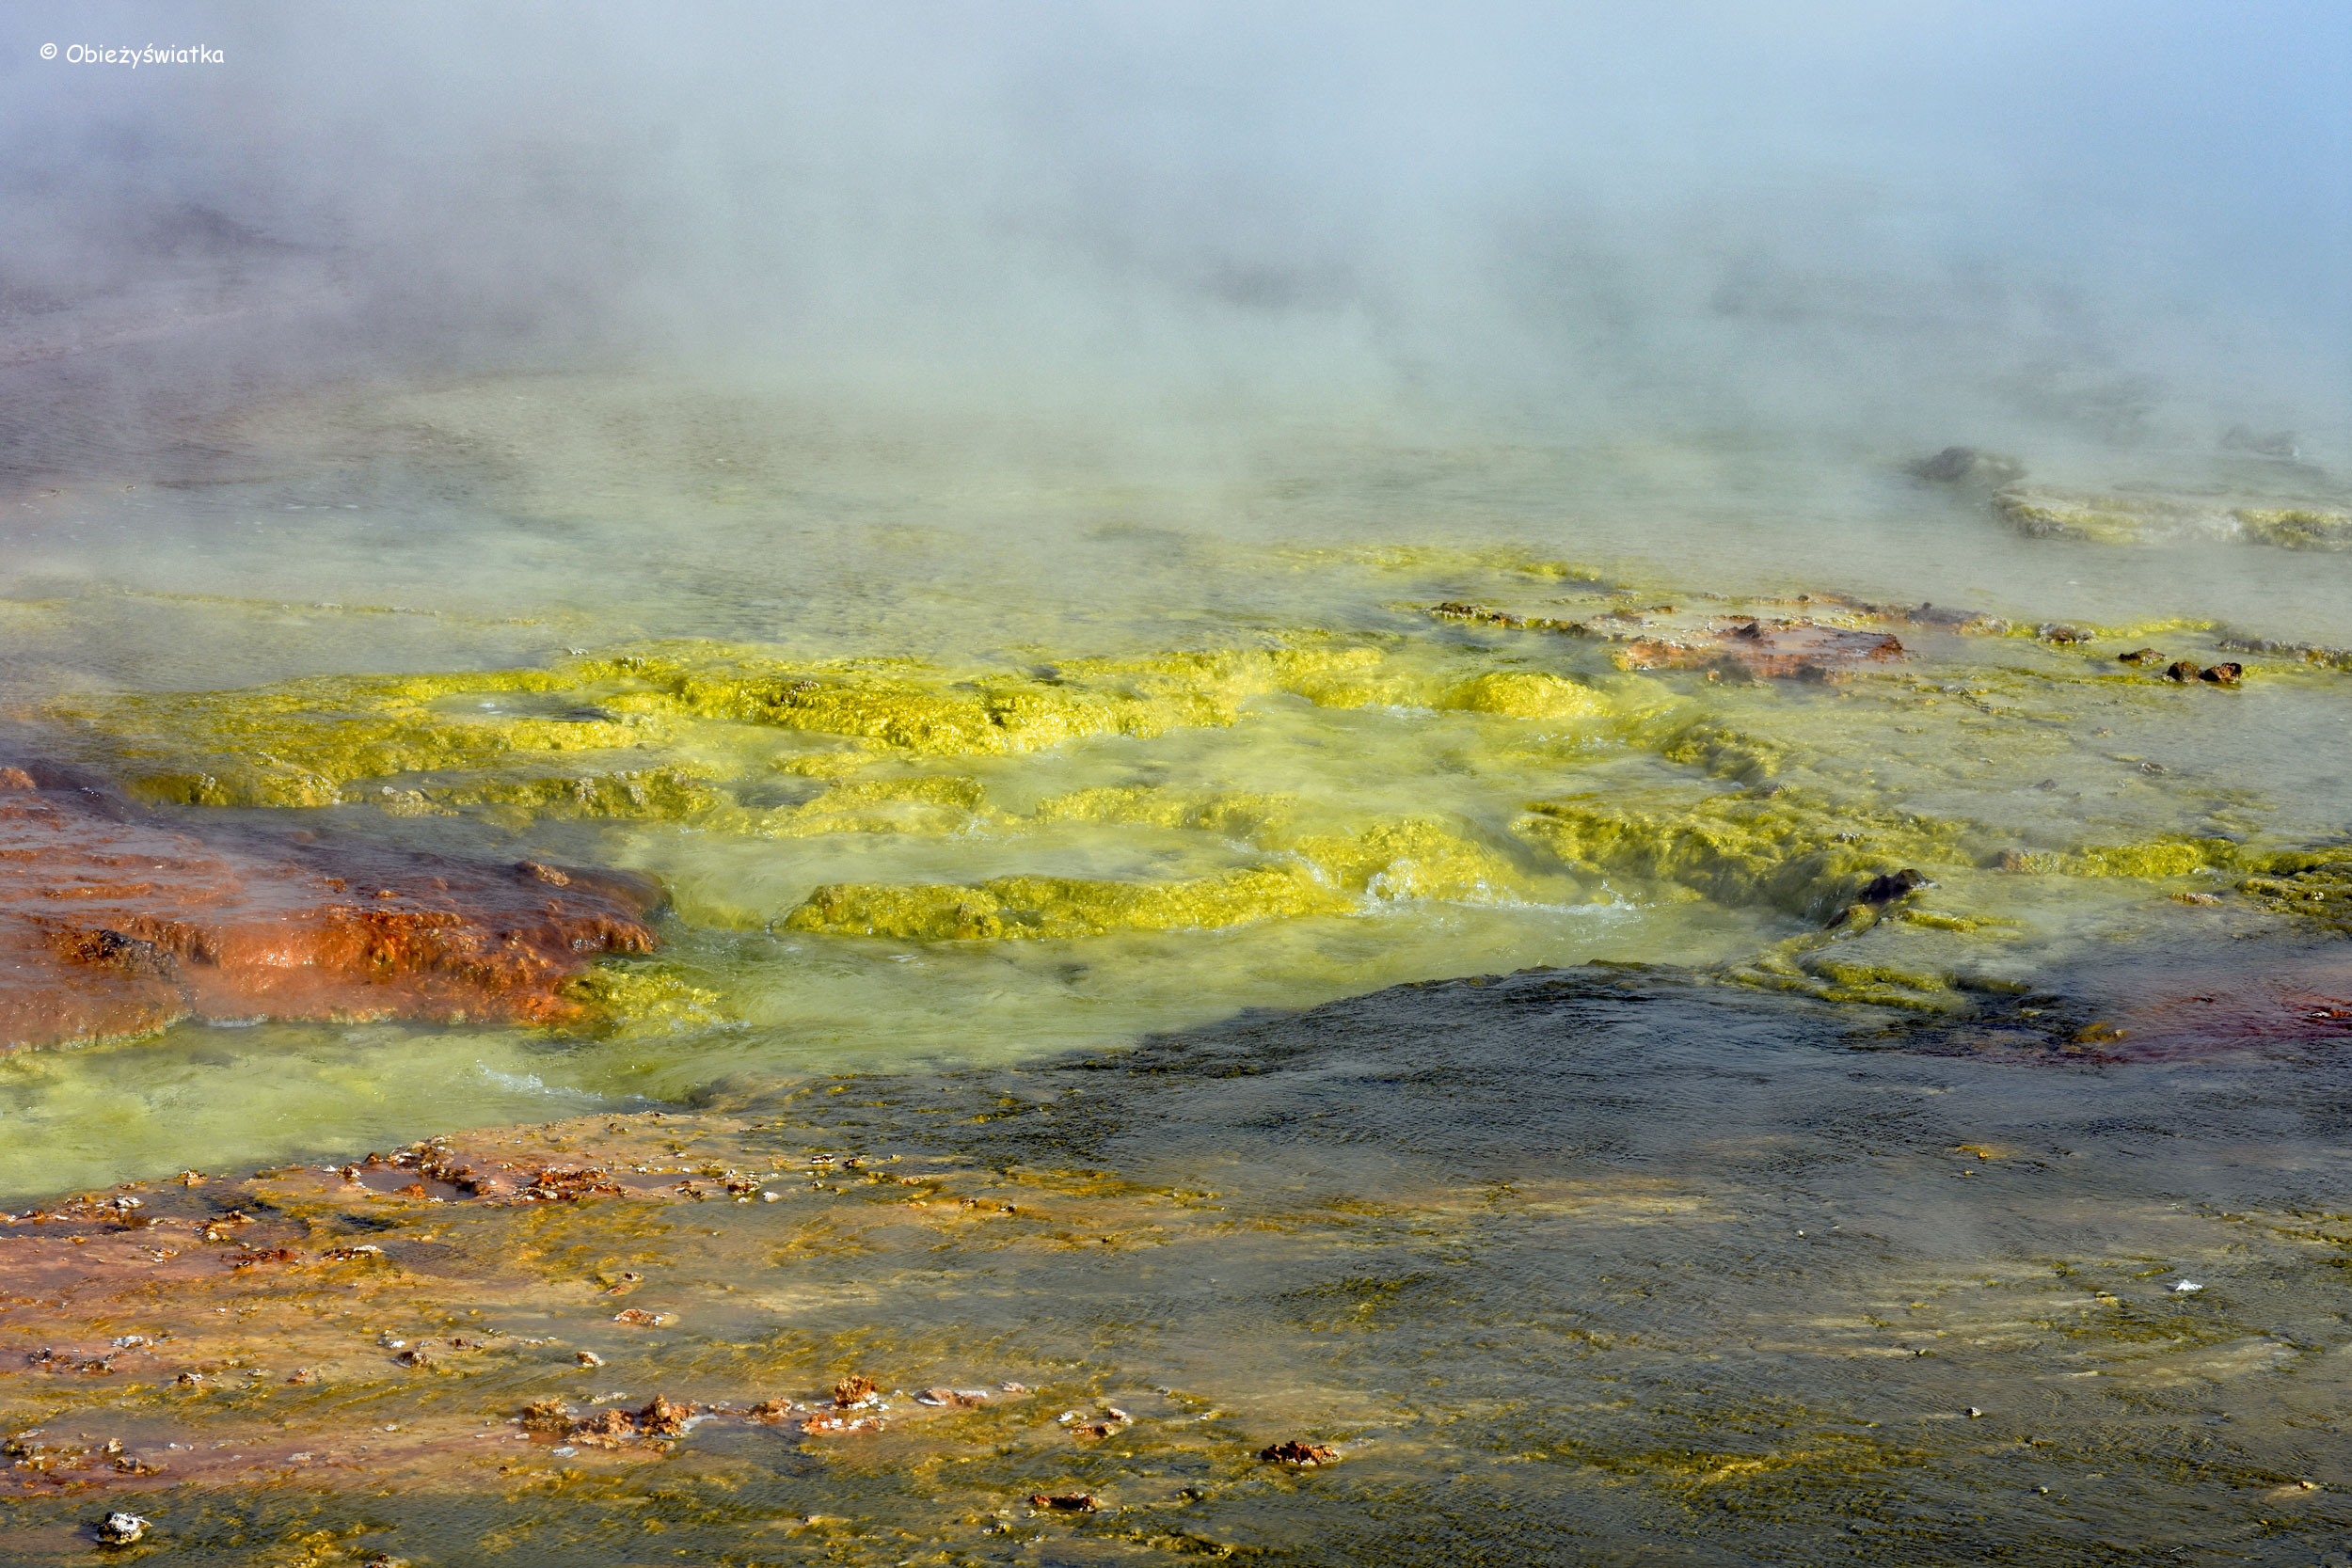 Przy Grand Prismatic Spring, Park Narodowy Yellowstone